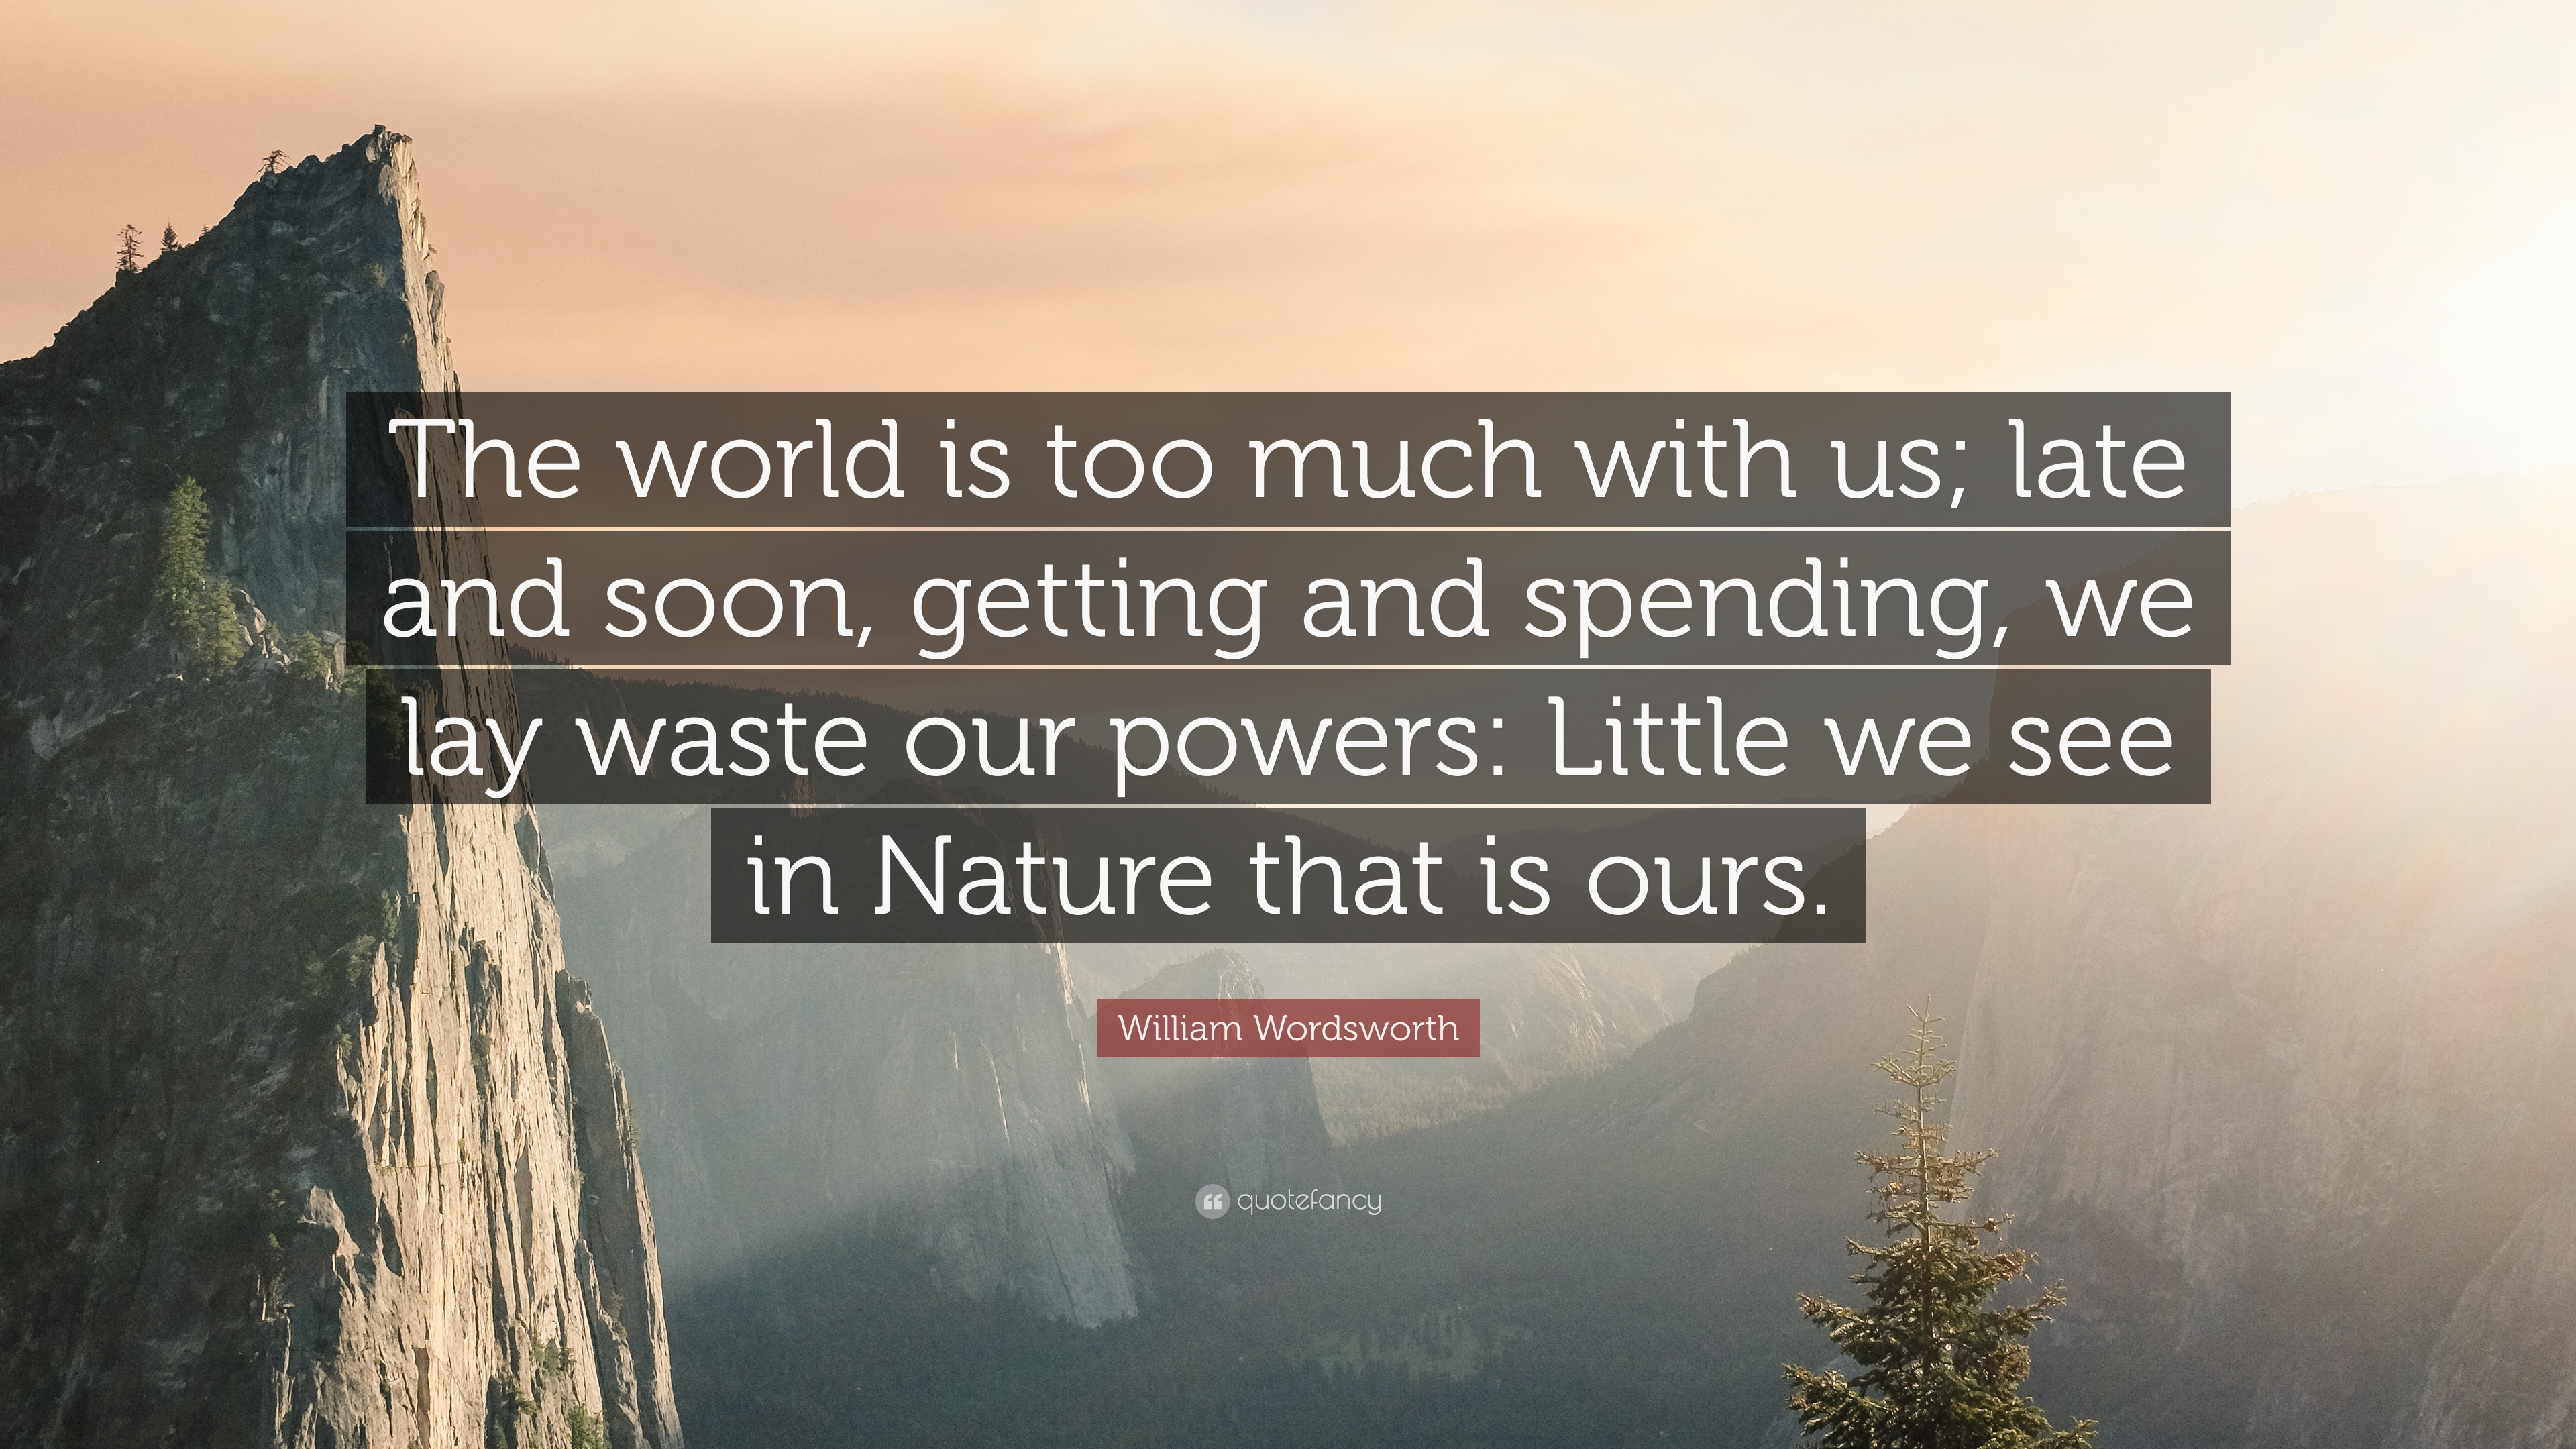 wordsworth nature is ours essay Quotations by william wordsworth, english poet getting and spending, we lay waste our powers: little we see in nature that is ours william wordsworth nature.